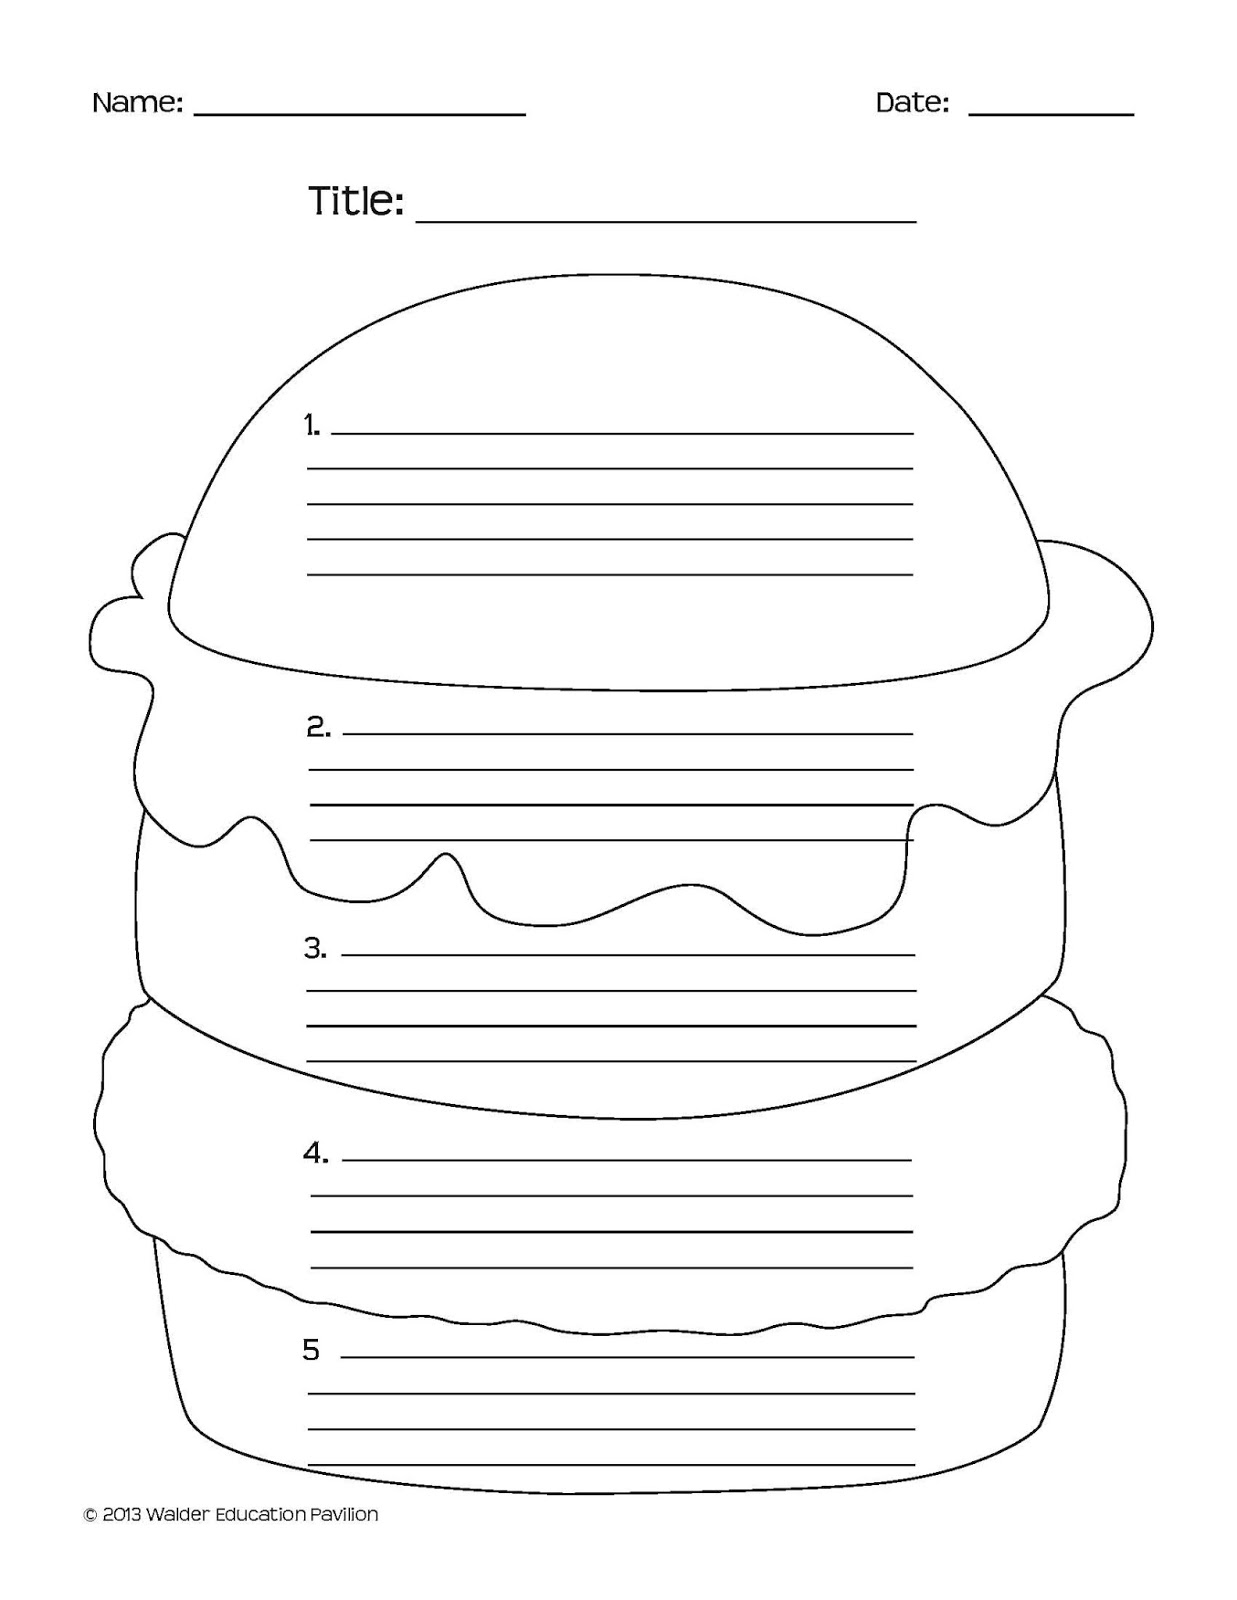 1237 x 1600 jpeg 108kB, Hamburger Essay Worksheet